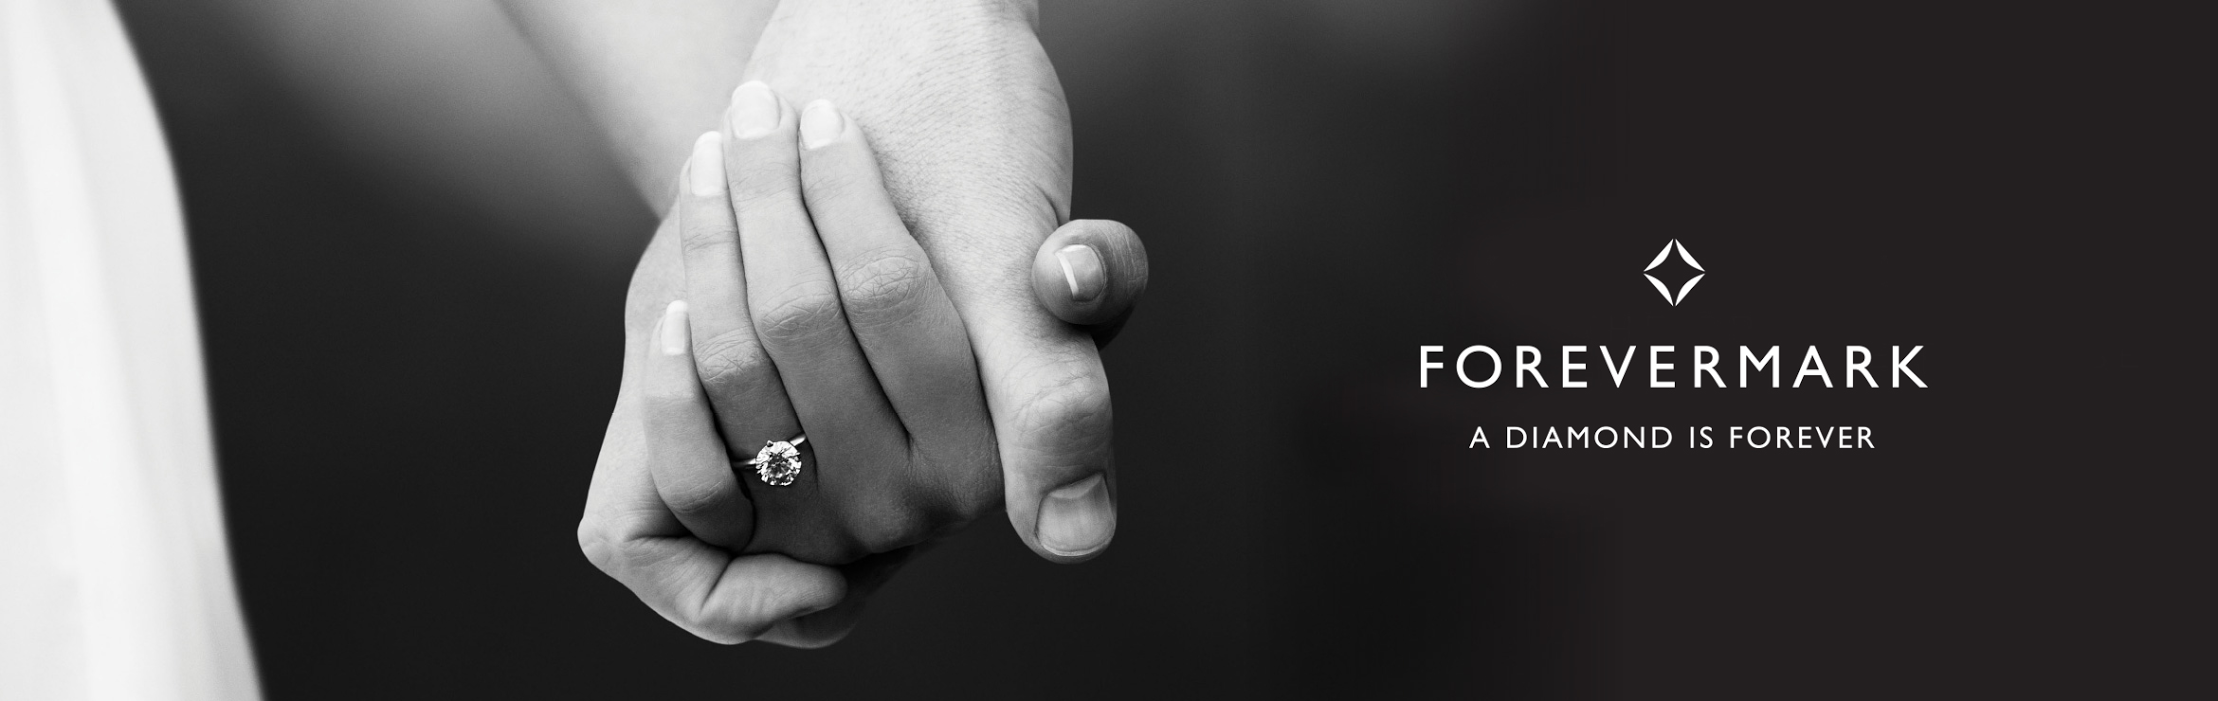 Forevermark Cornerstones Diamond Ring